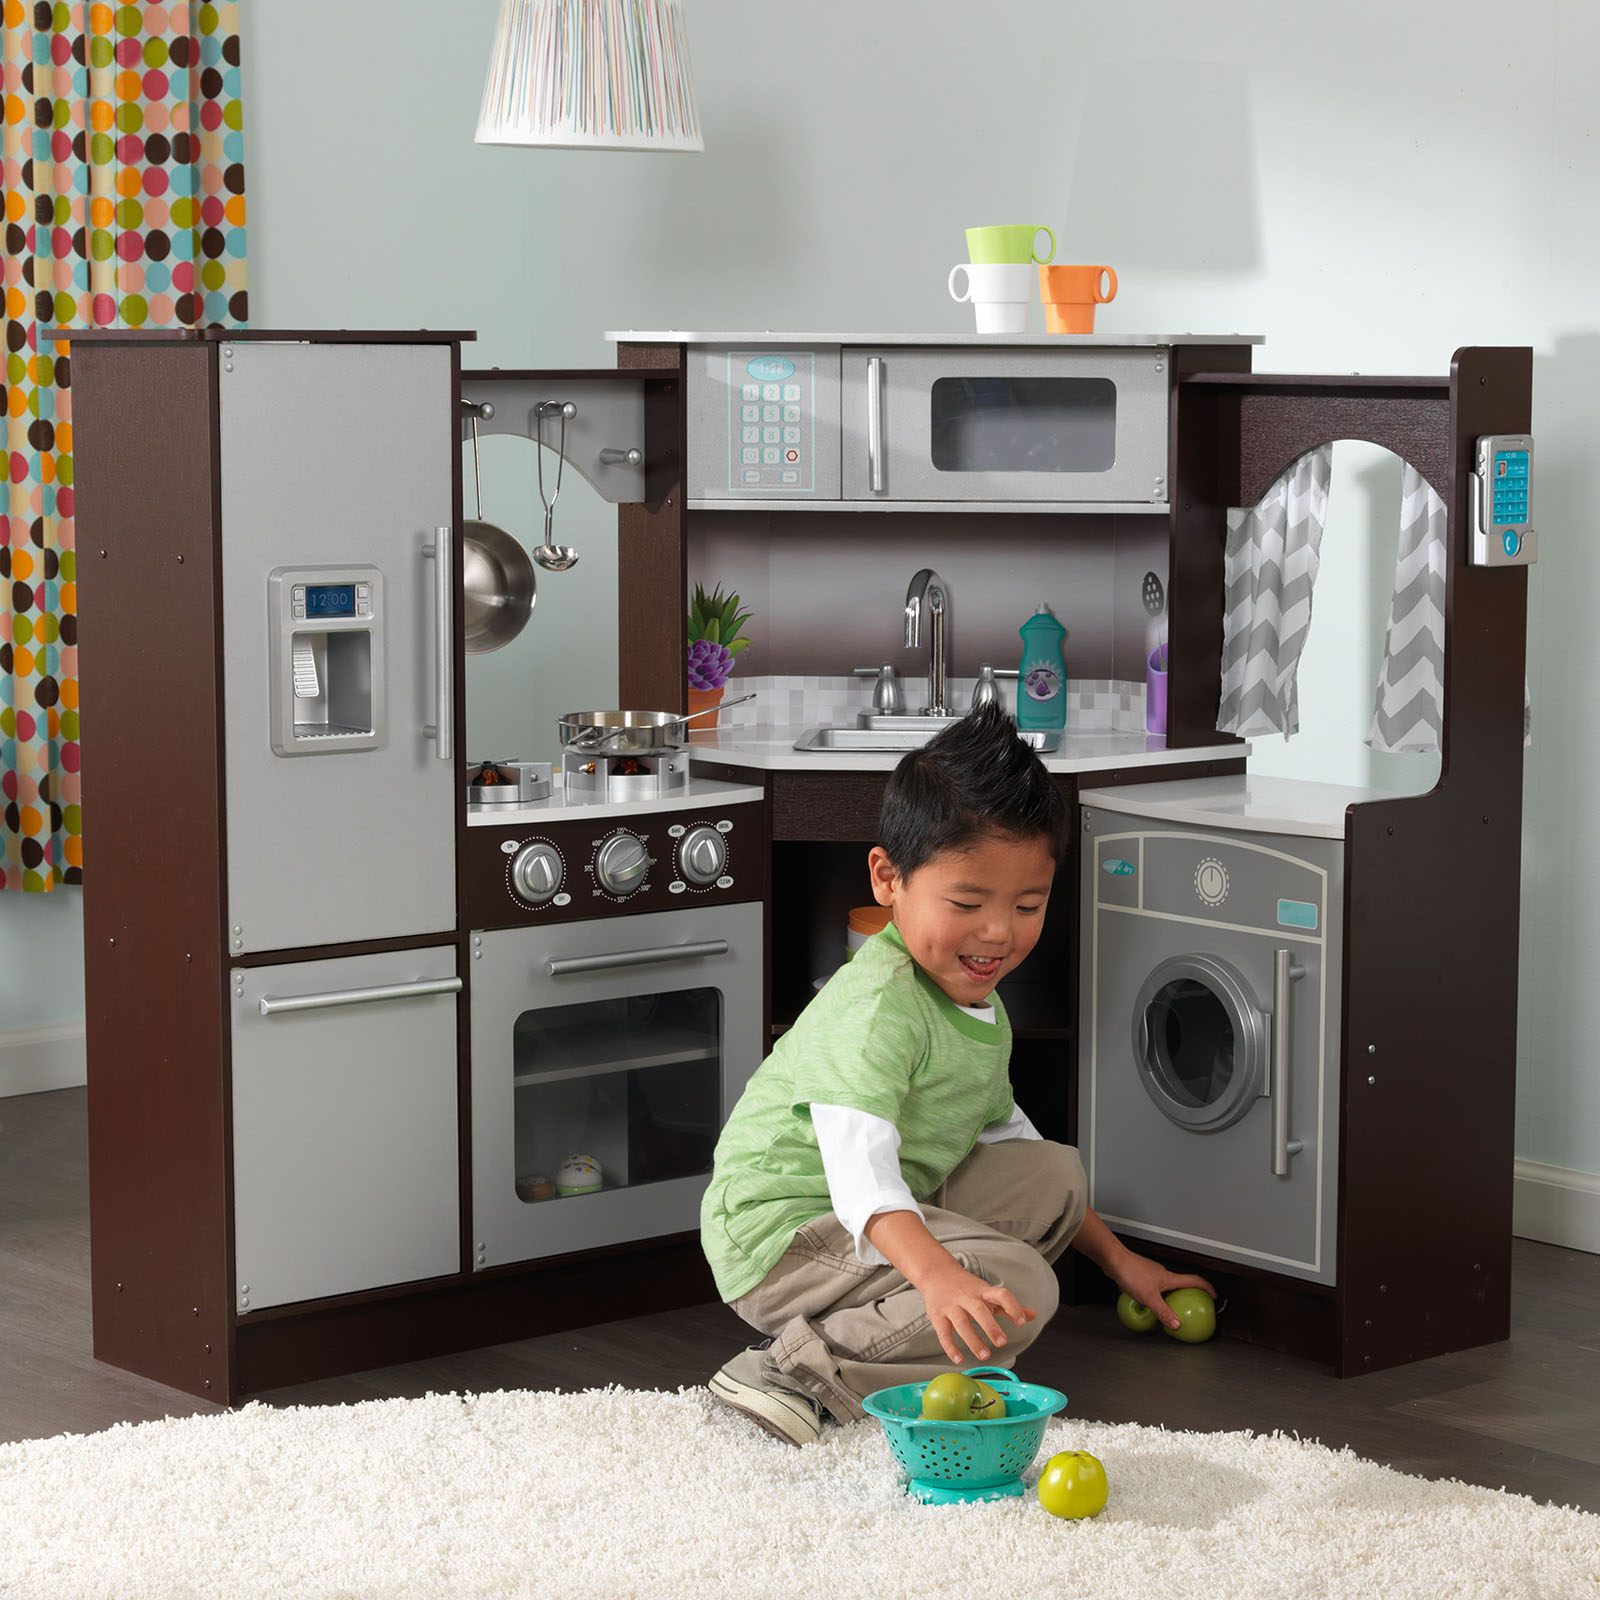 KidKraft Ultimate Corner Play Kitchen With Lights And Sounds Hayneedle - Kidkraft ultimate corner play kitchen with lights and sounds